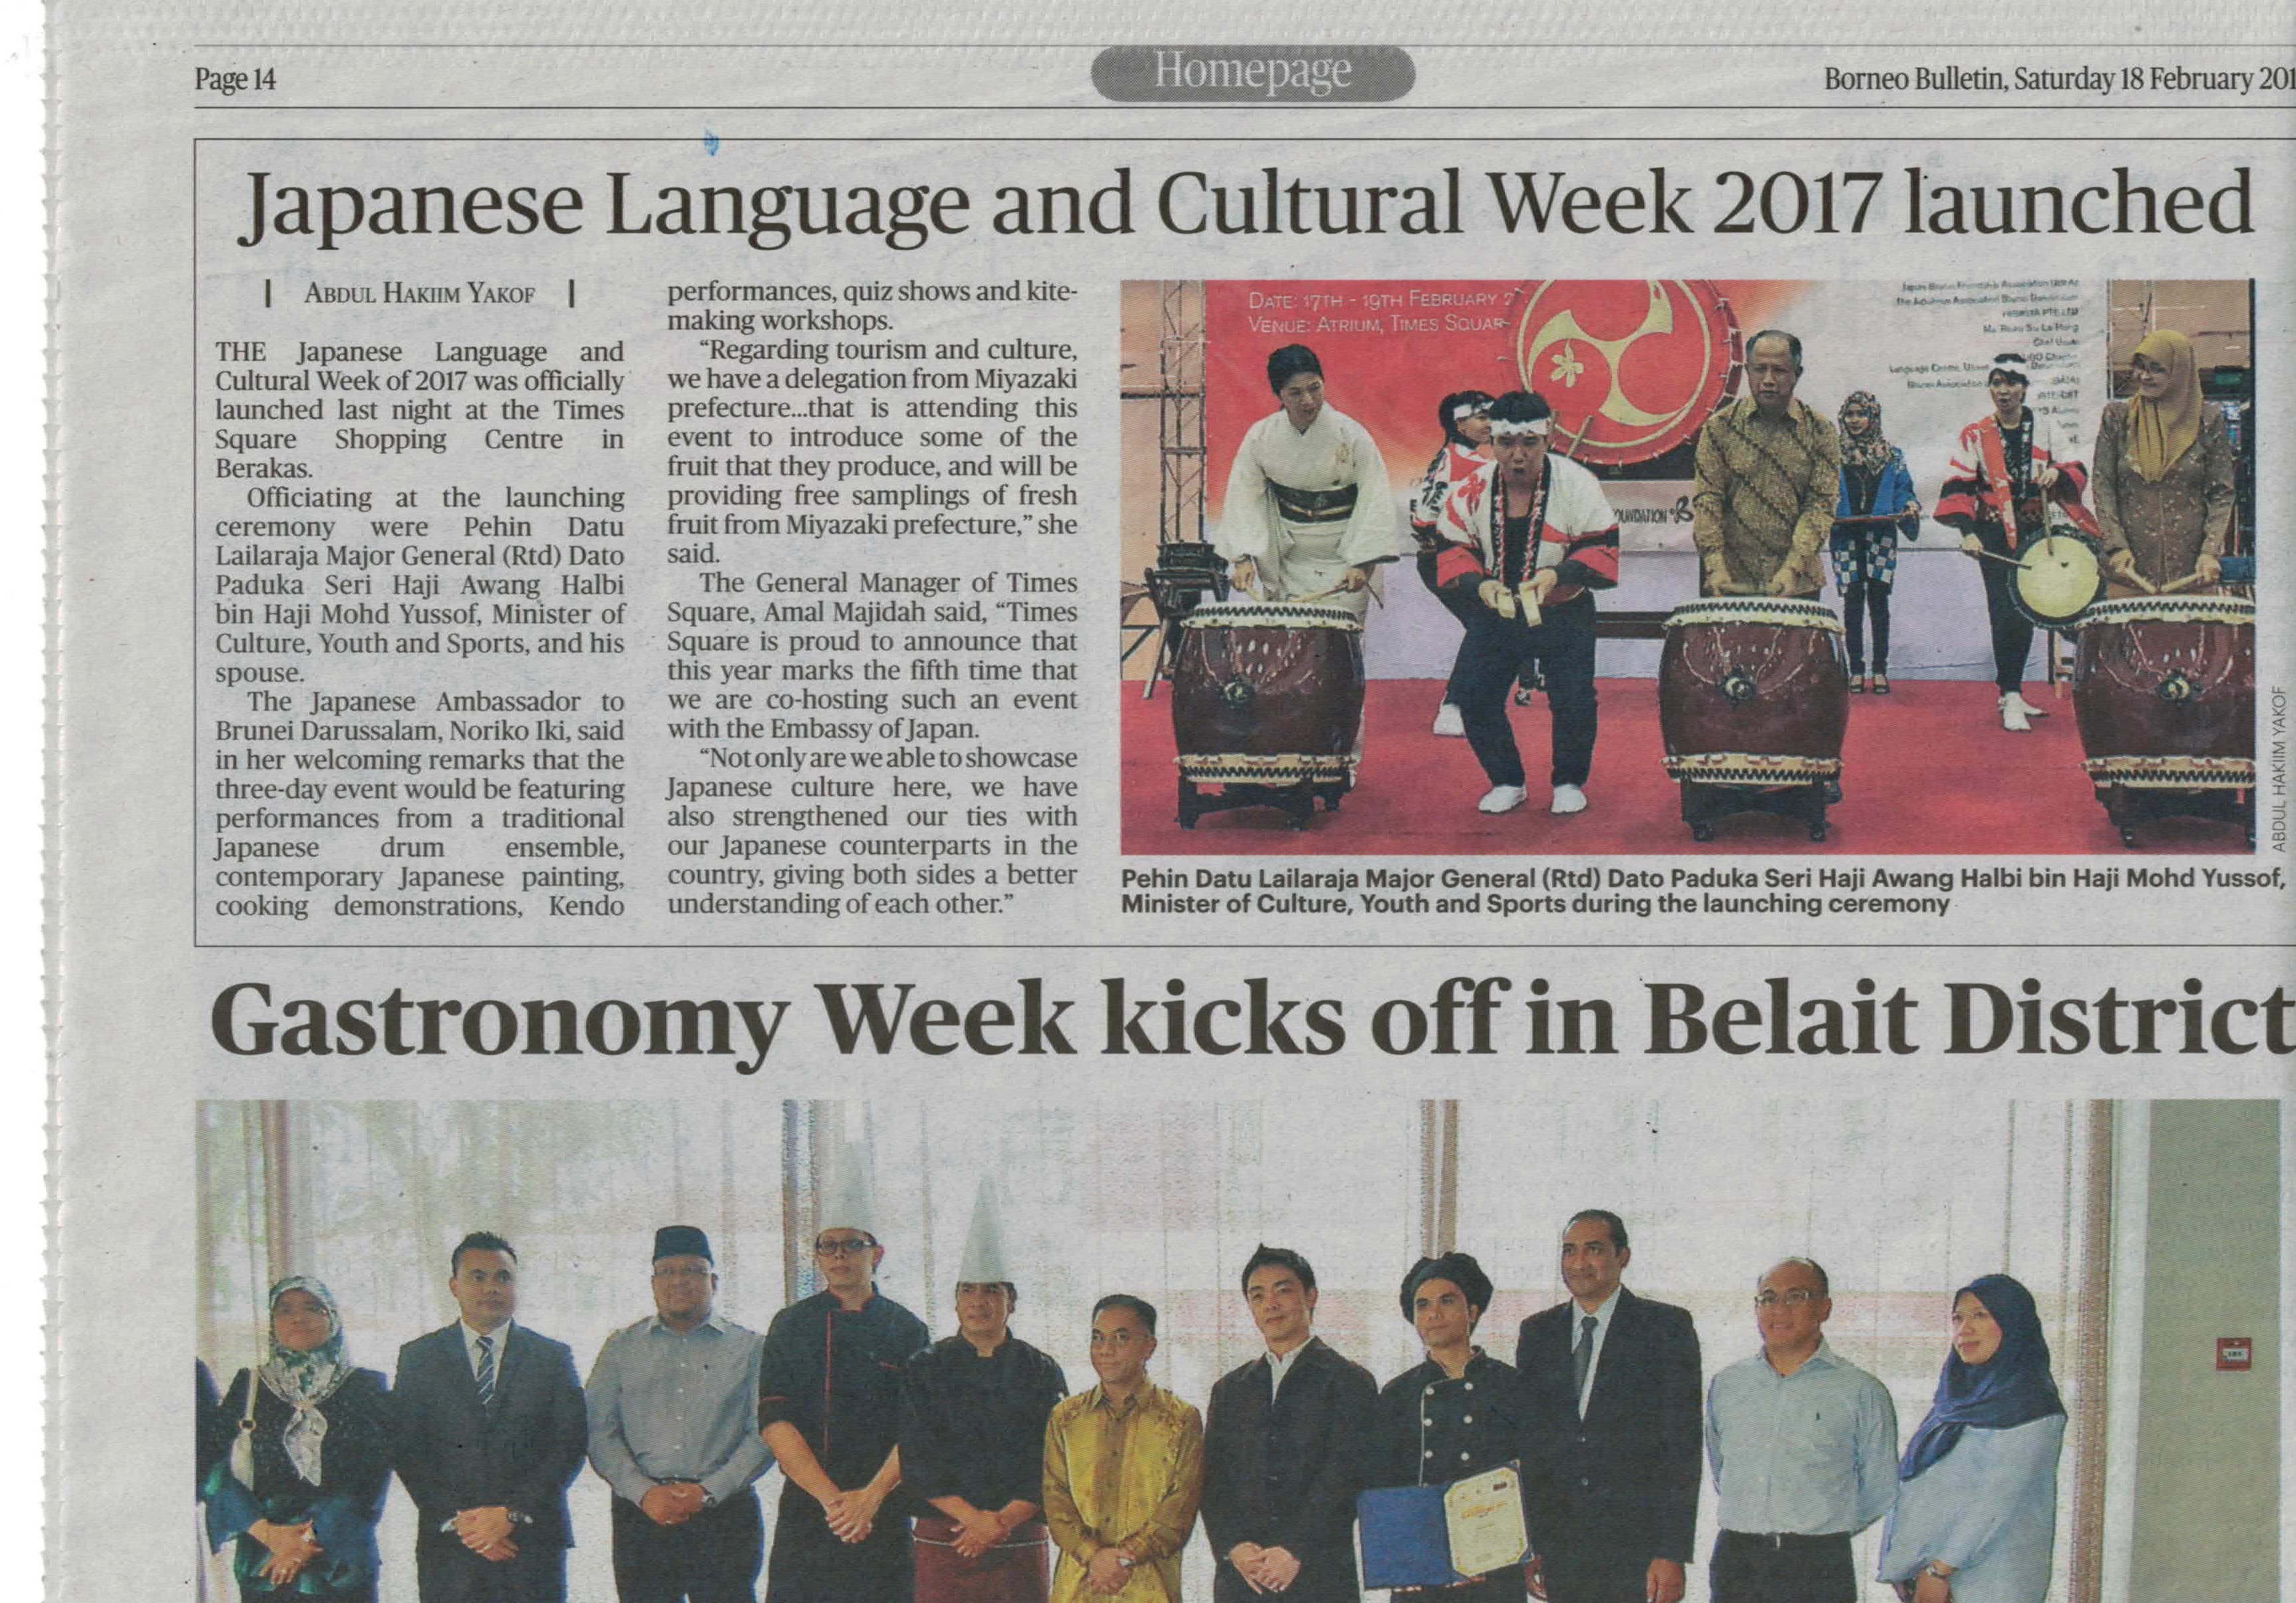 Borneo Bulletin Weekend @Brunei (Sat, Feb 18 2017)